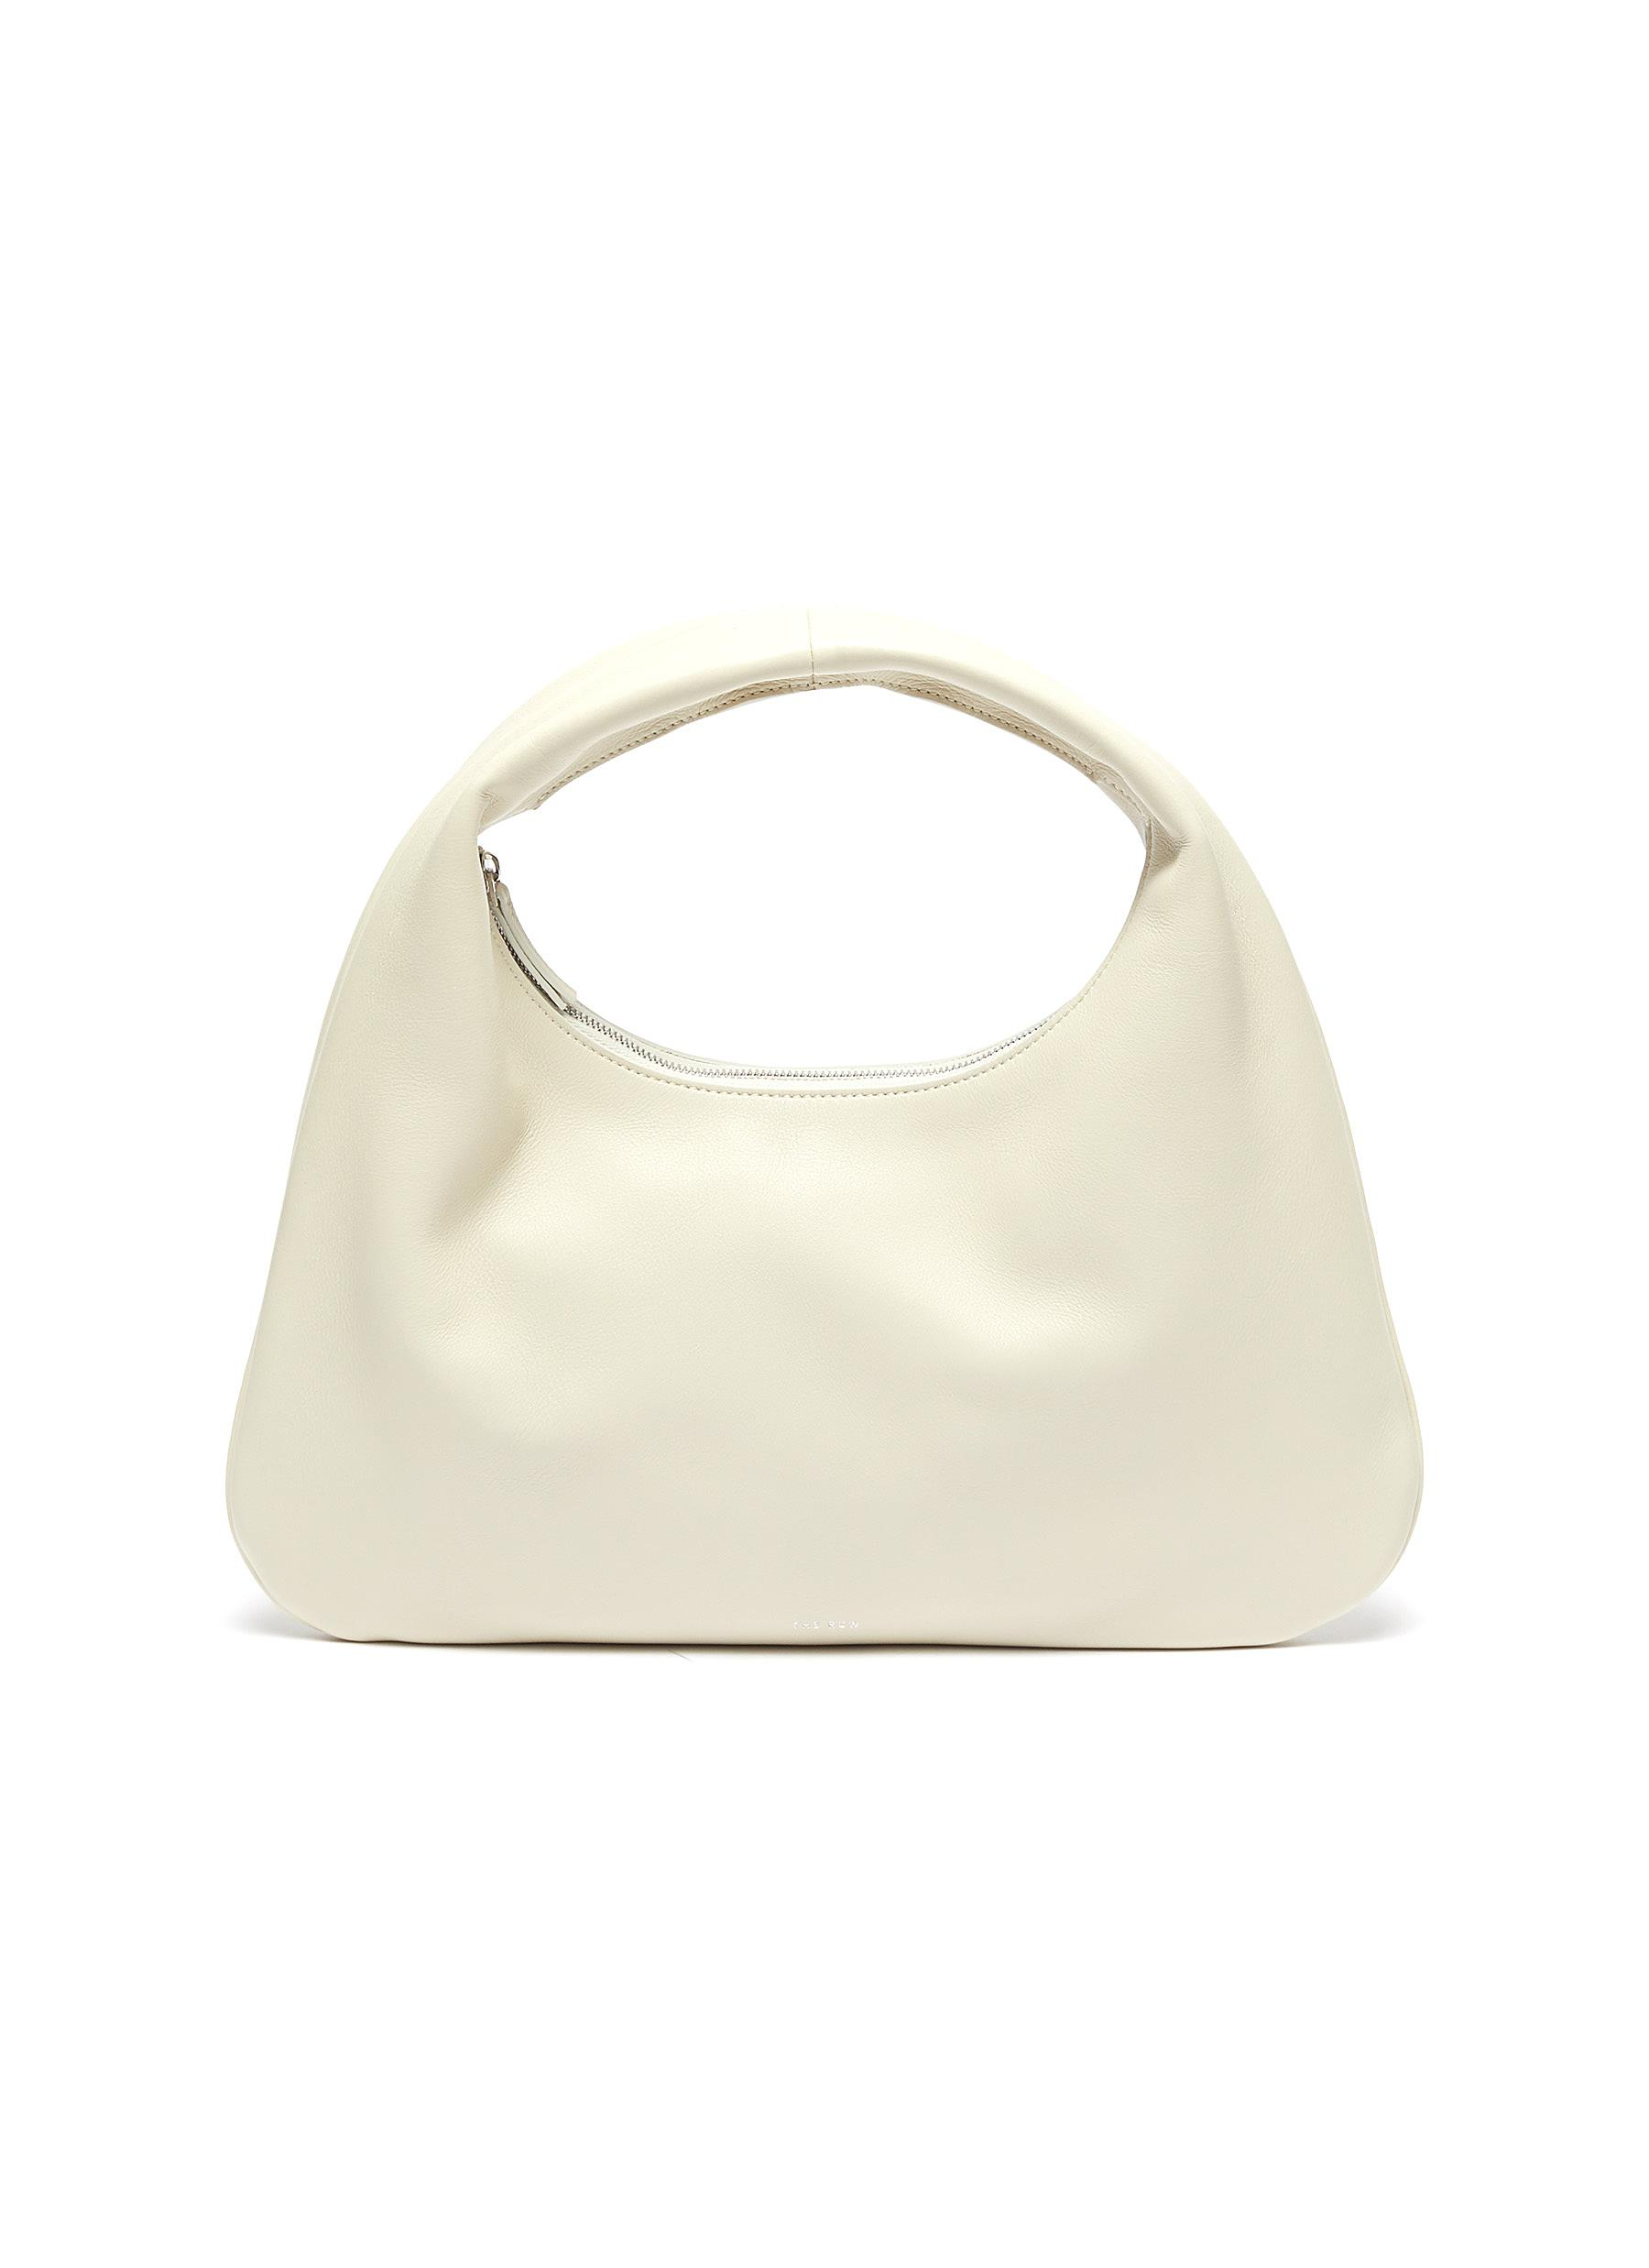 The Row 'EVERYDAY' SMALL LEATHER SHOULDER BAG